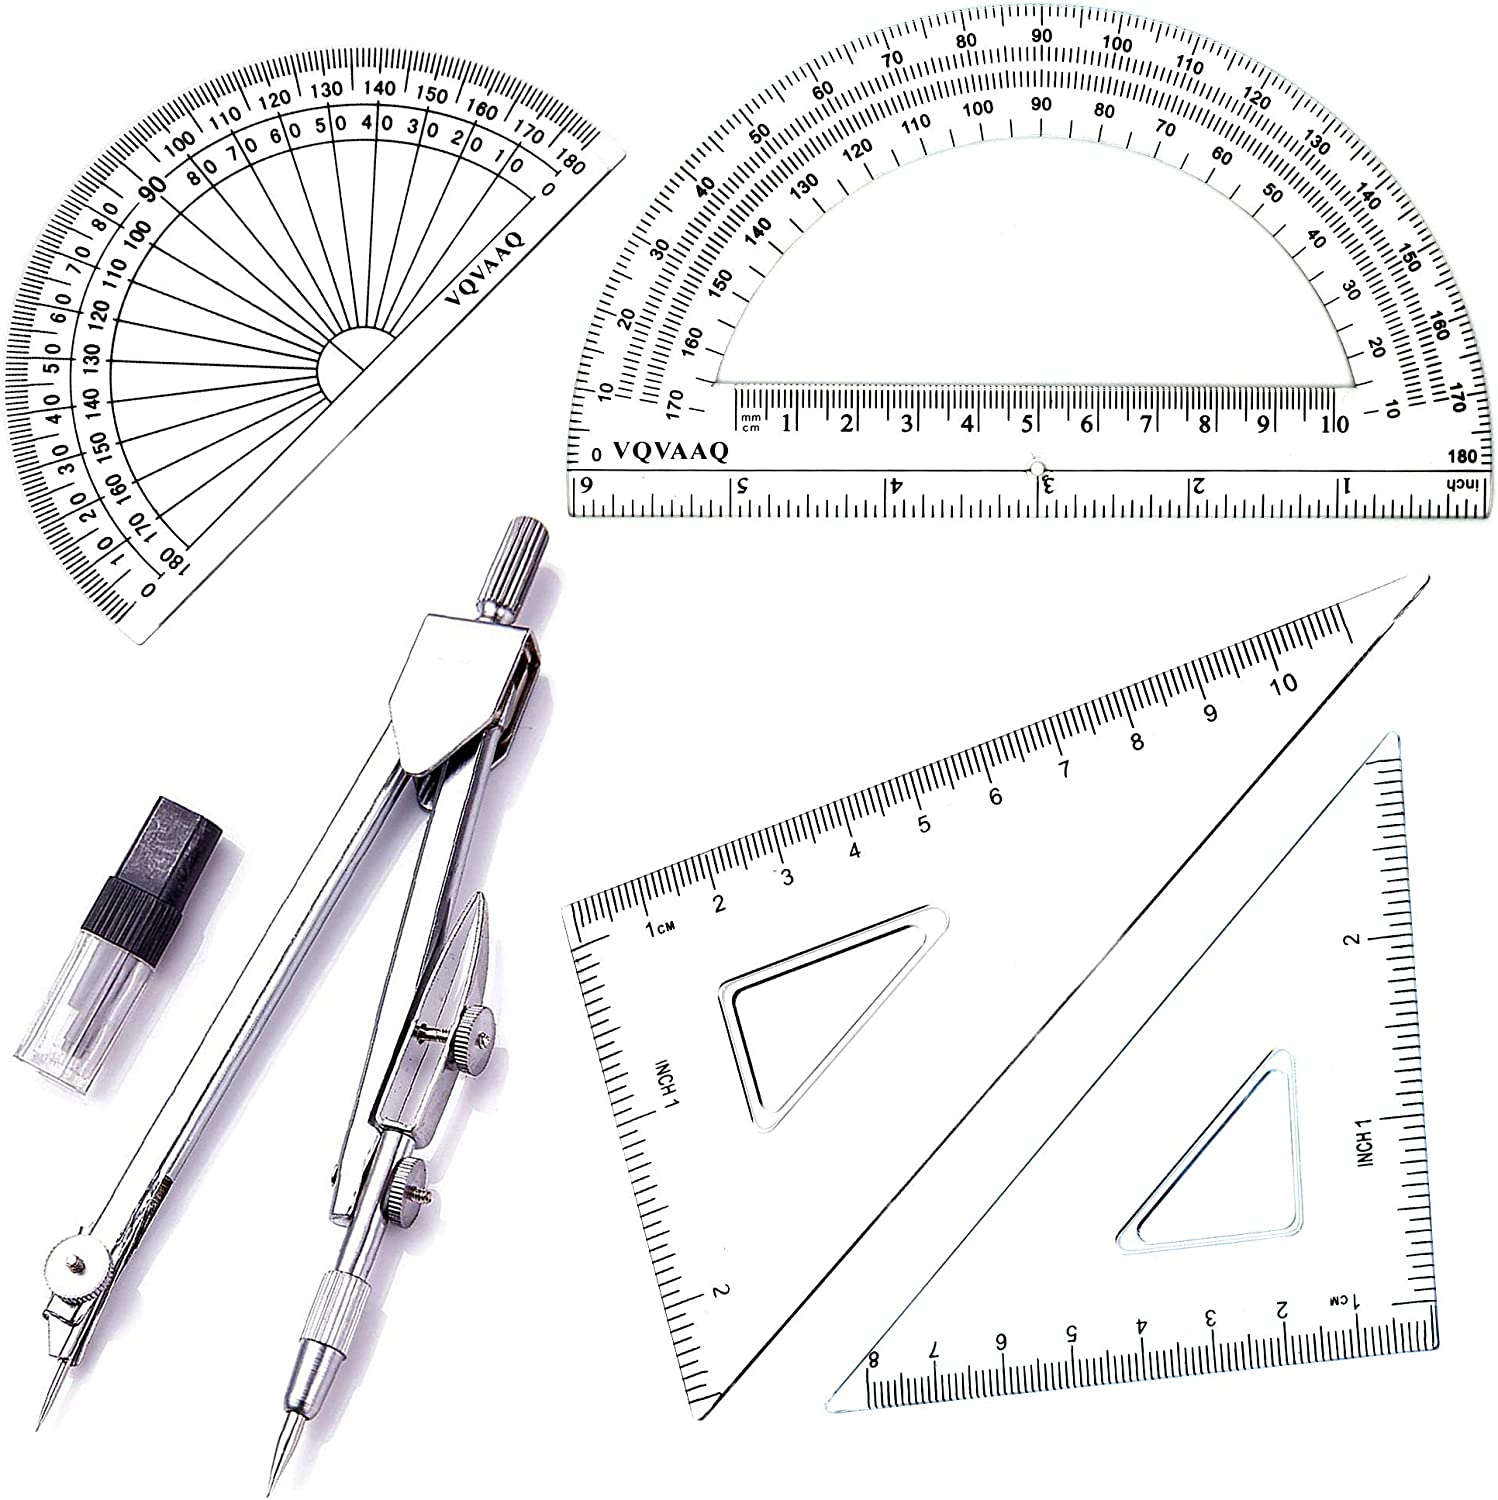 Geometry School Set with Compass Quality Protra Max 51% OFF Drawing Reservation